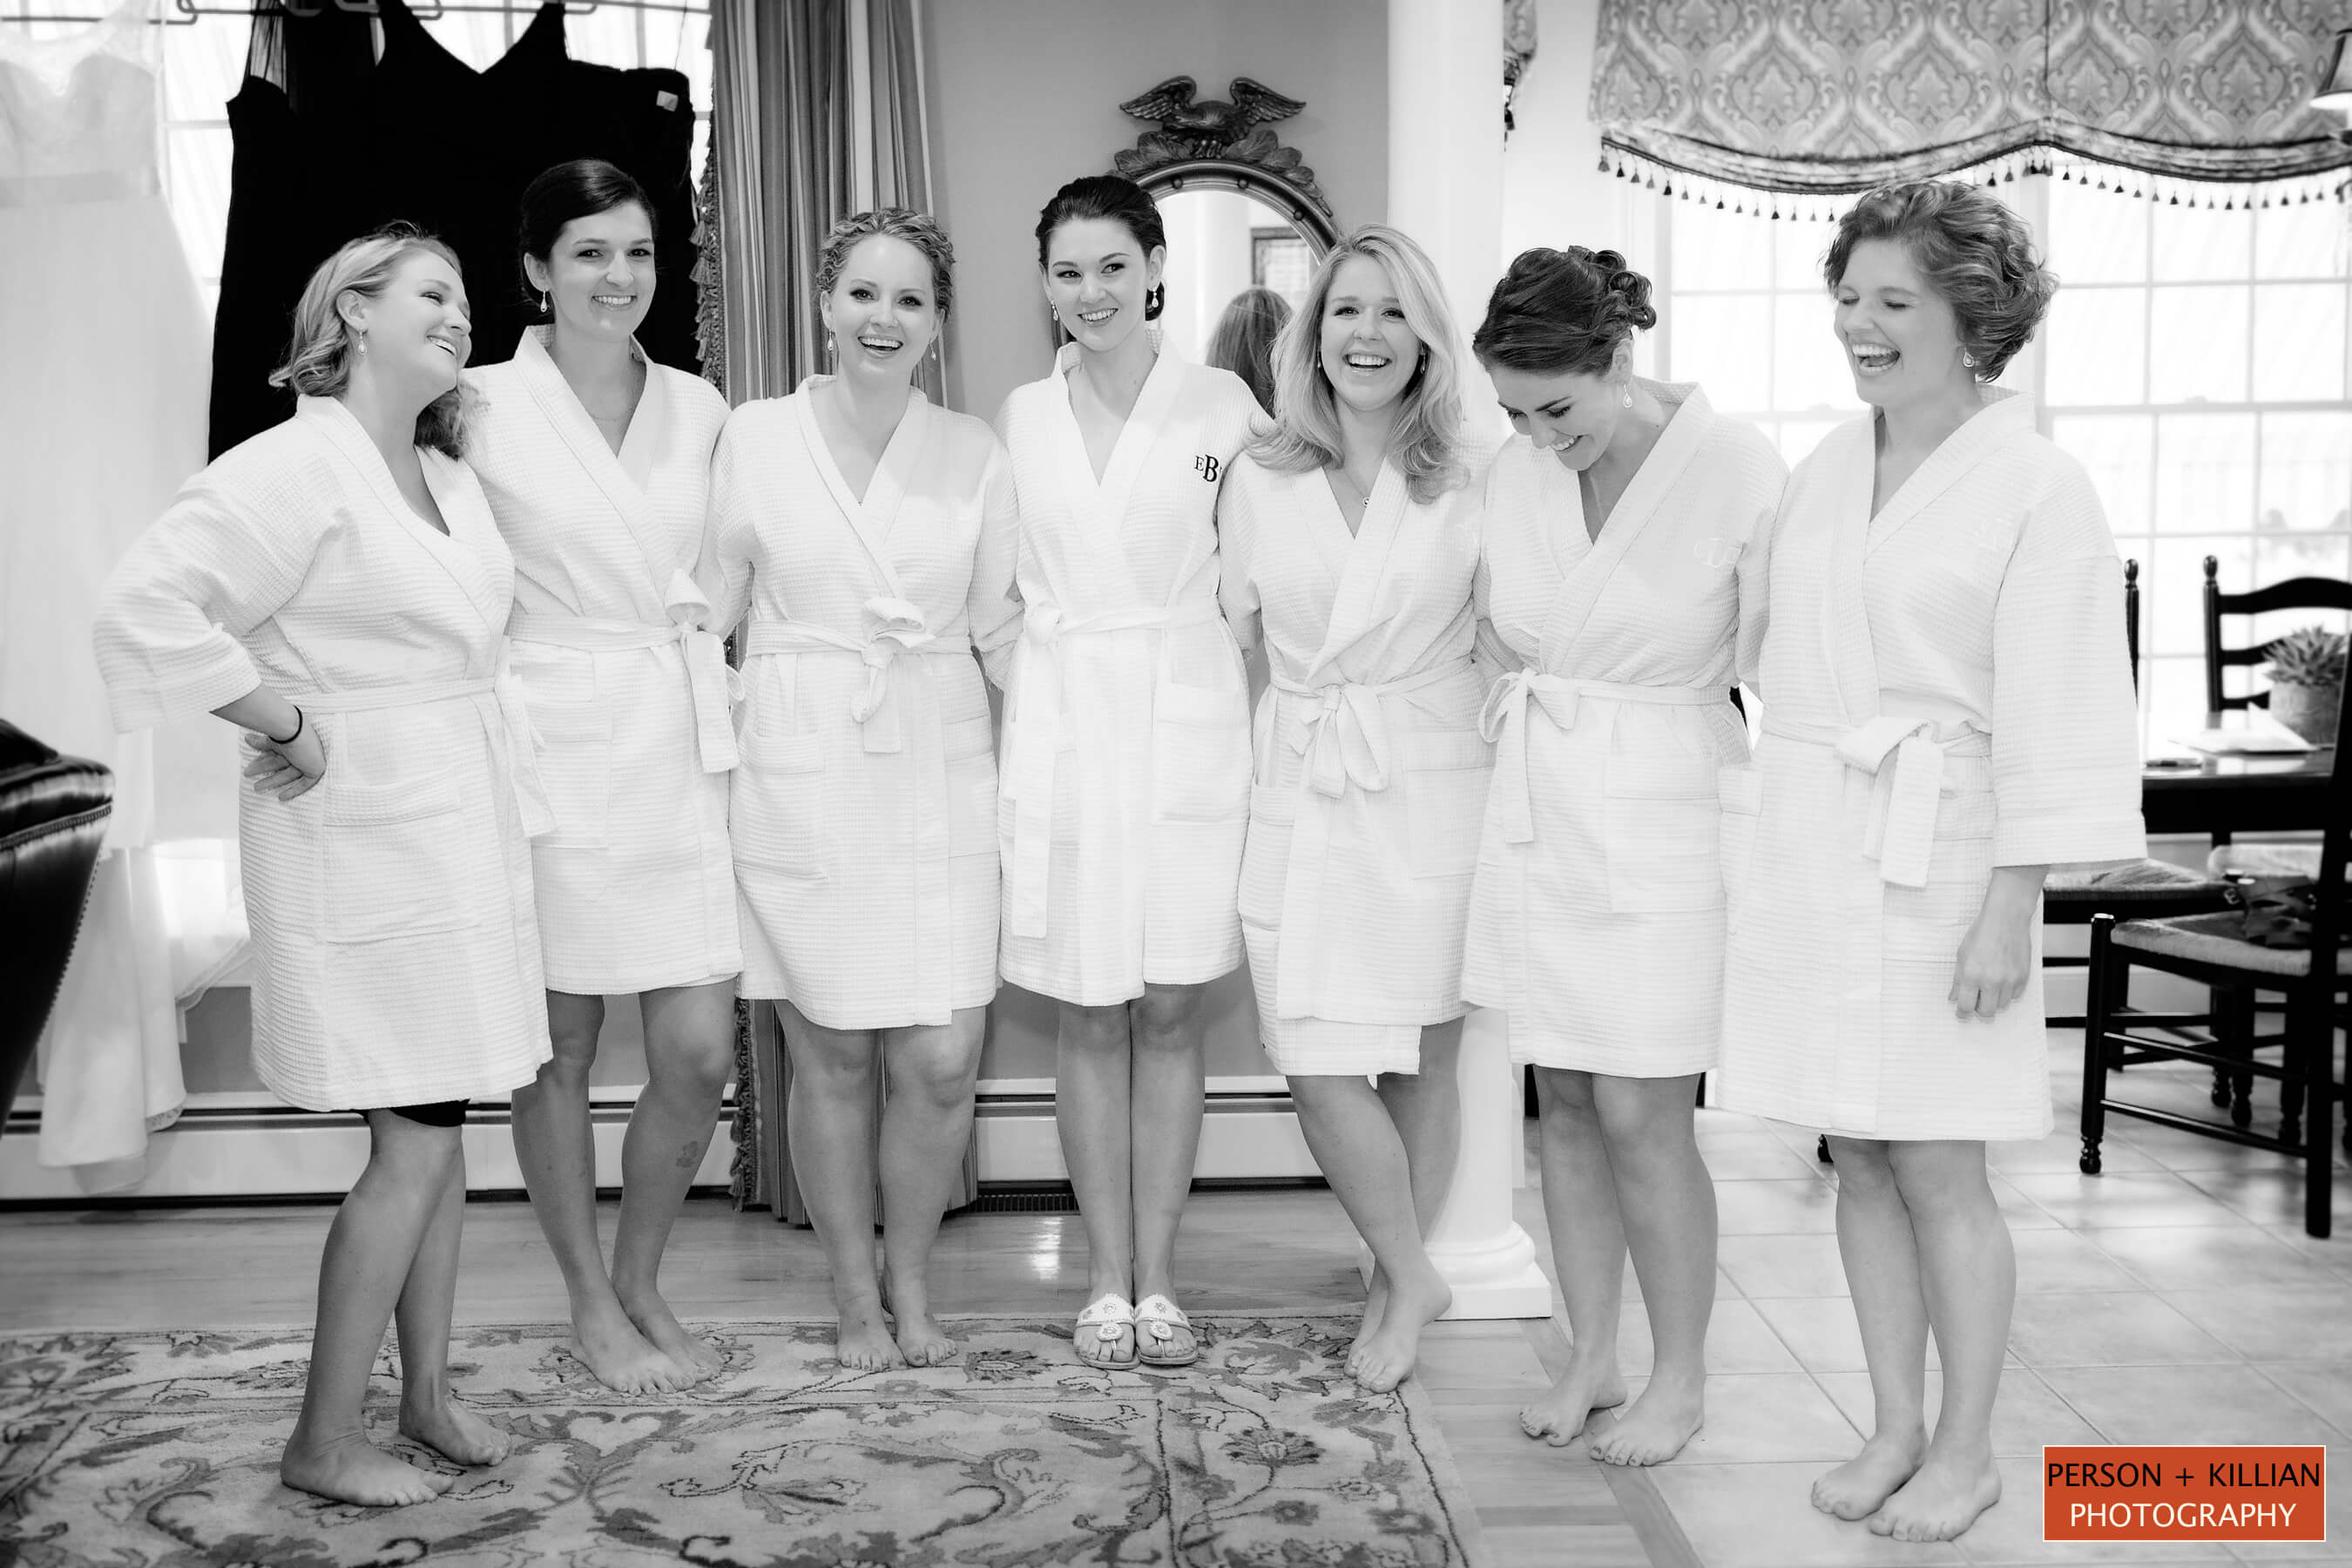 Charlotte Phinney | 5 TIPS TO HELP YOU CHOOSE A BRIDESMAID